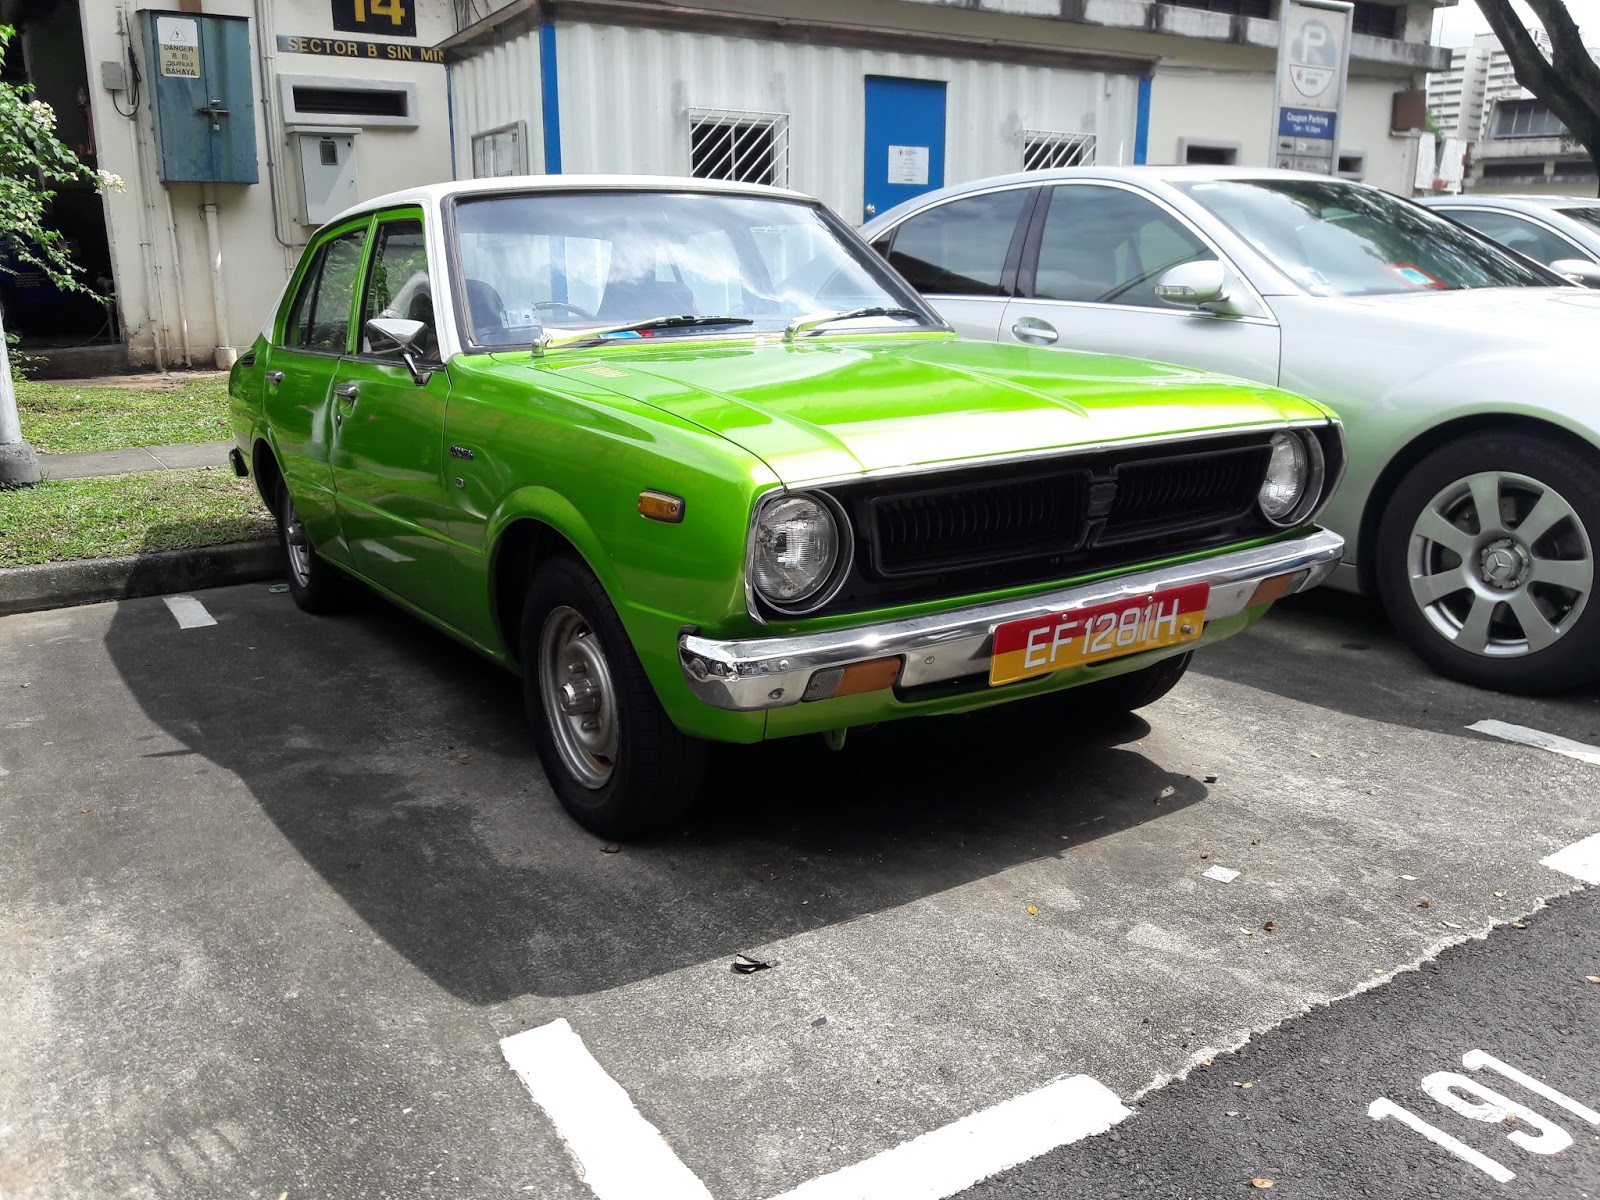 Singapore Vintage and Classic Cars: More than an old car #10 ...